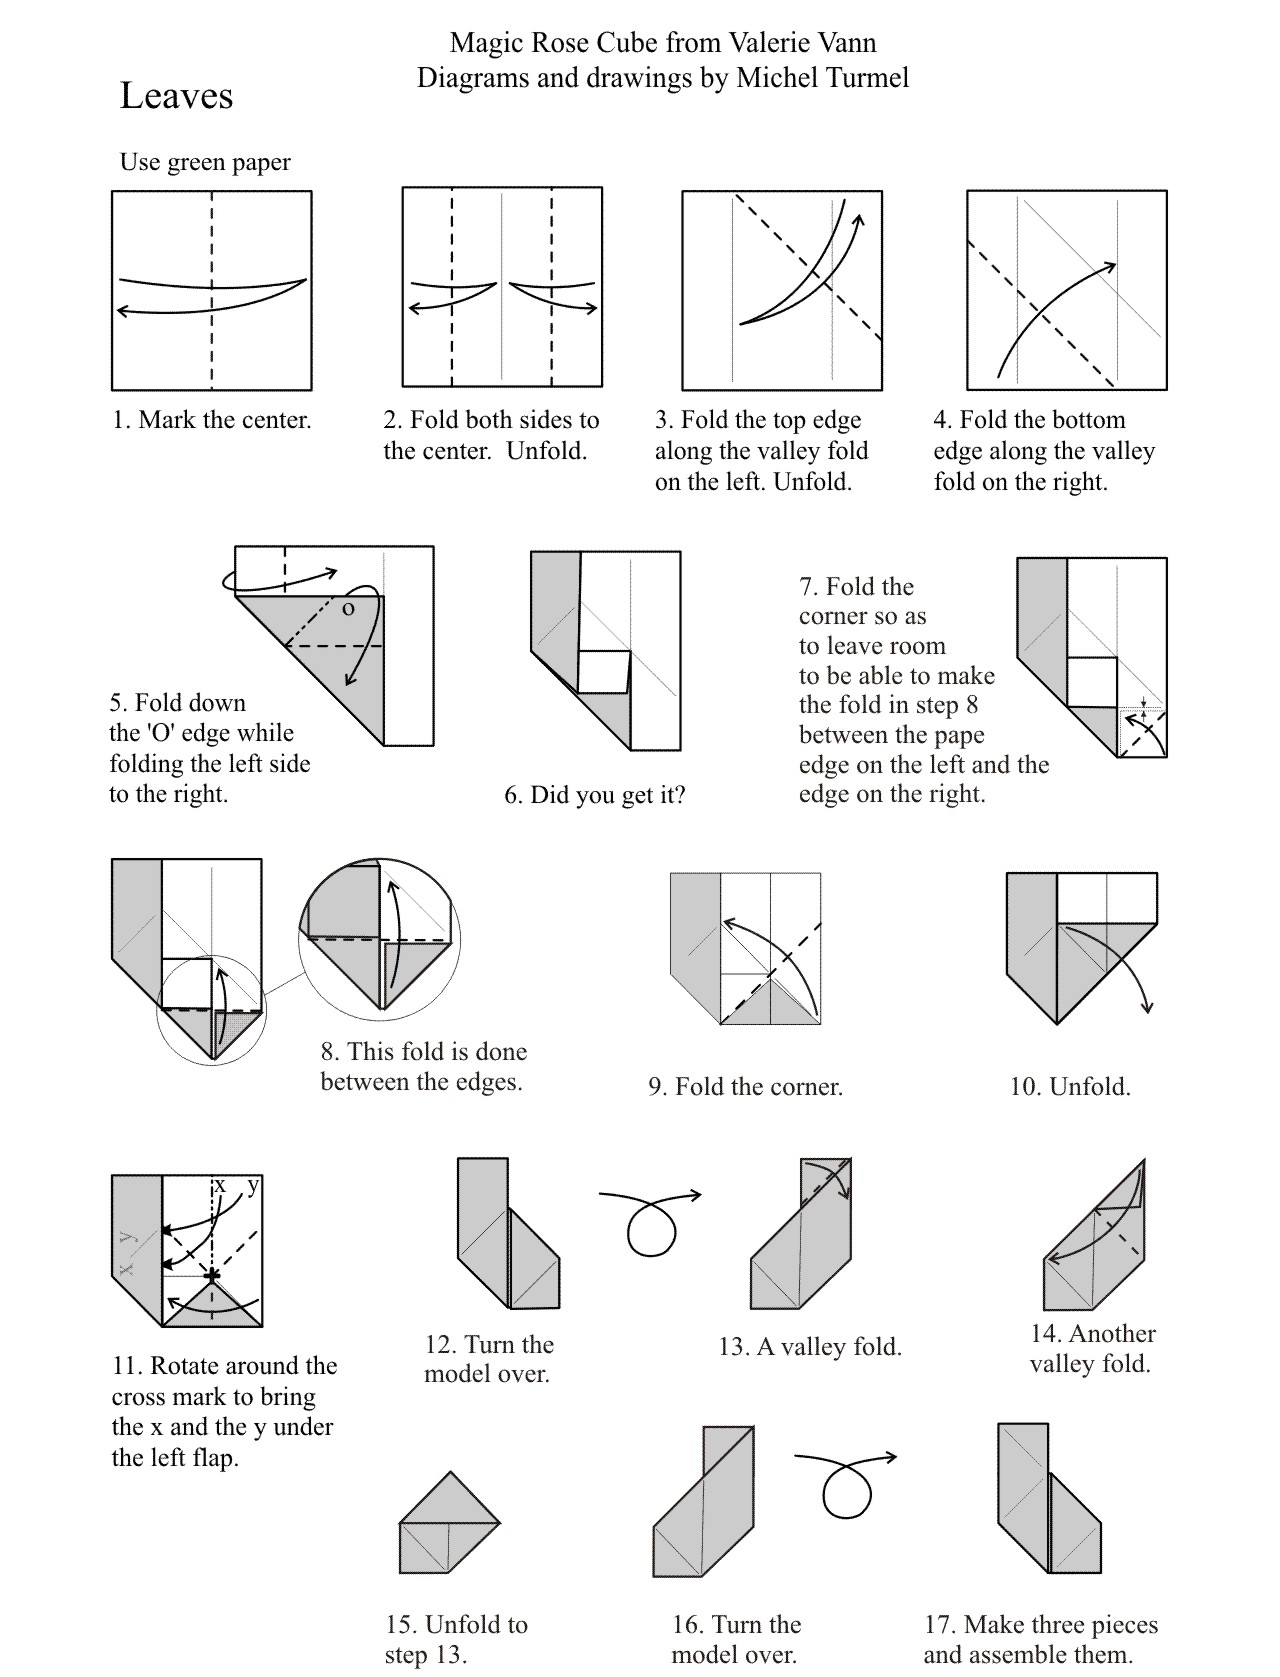 Magic Rose Cube Diagram Great Engine Wiring Schematic Origami Instructions Rh 1origami Com